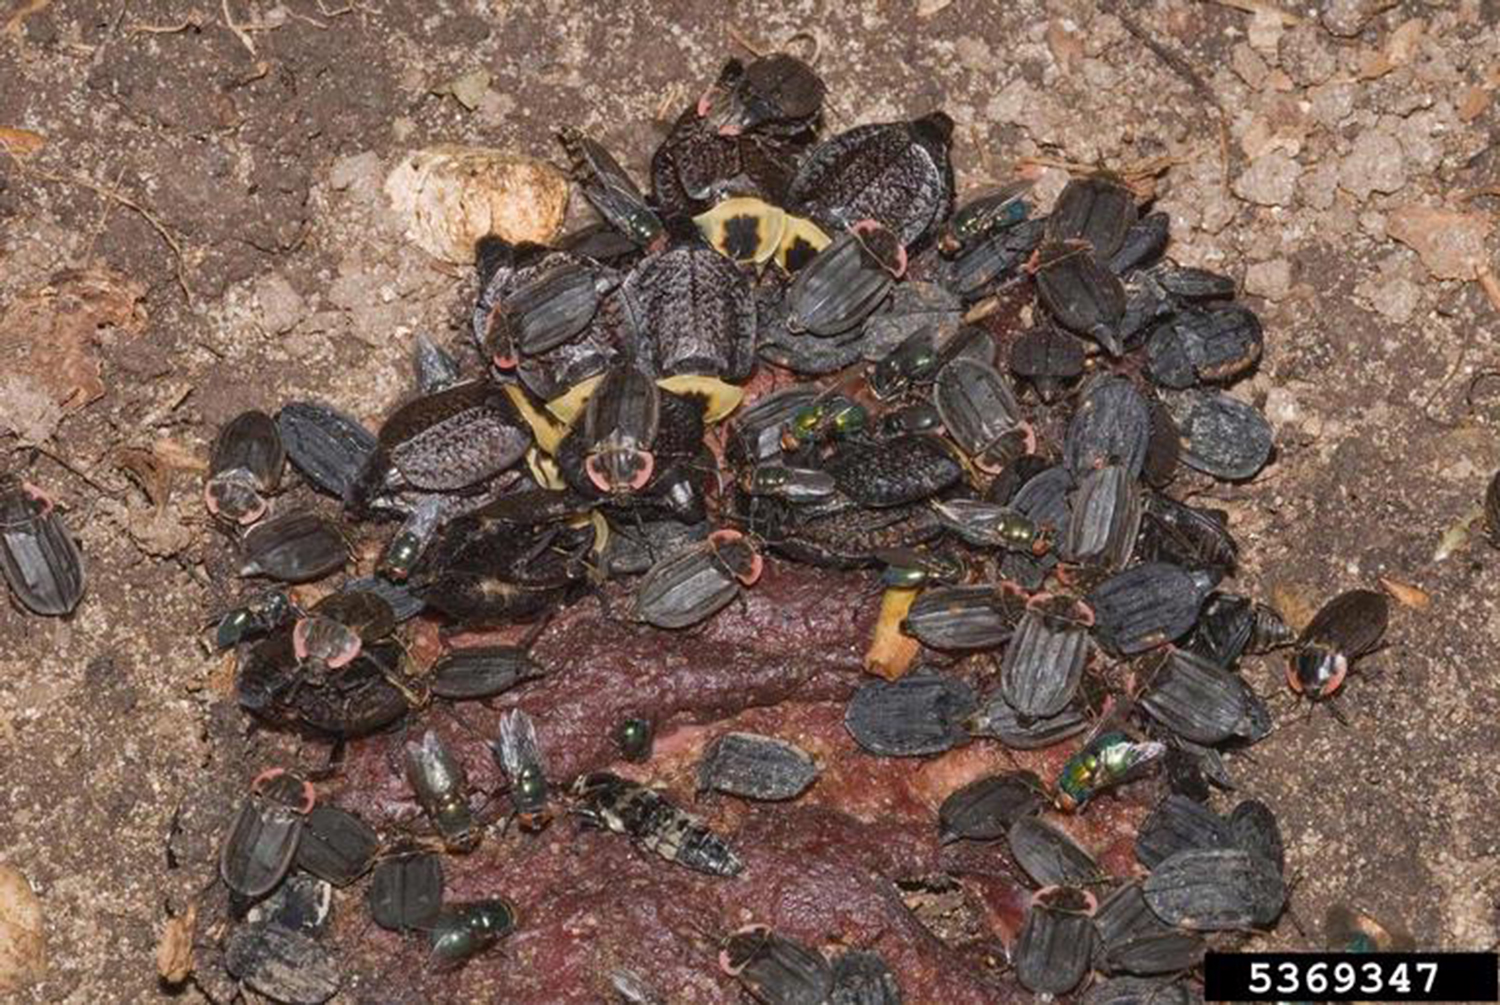 A picture of a large group of carrion beetles.